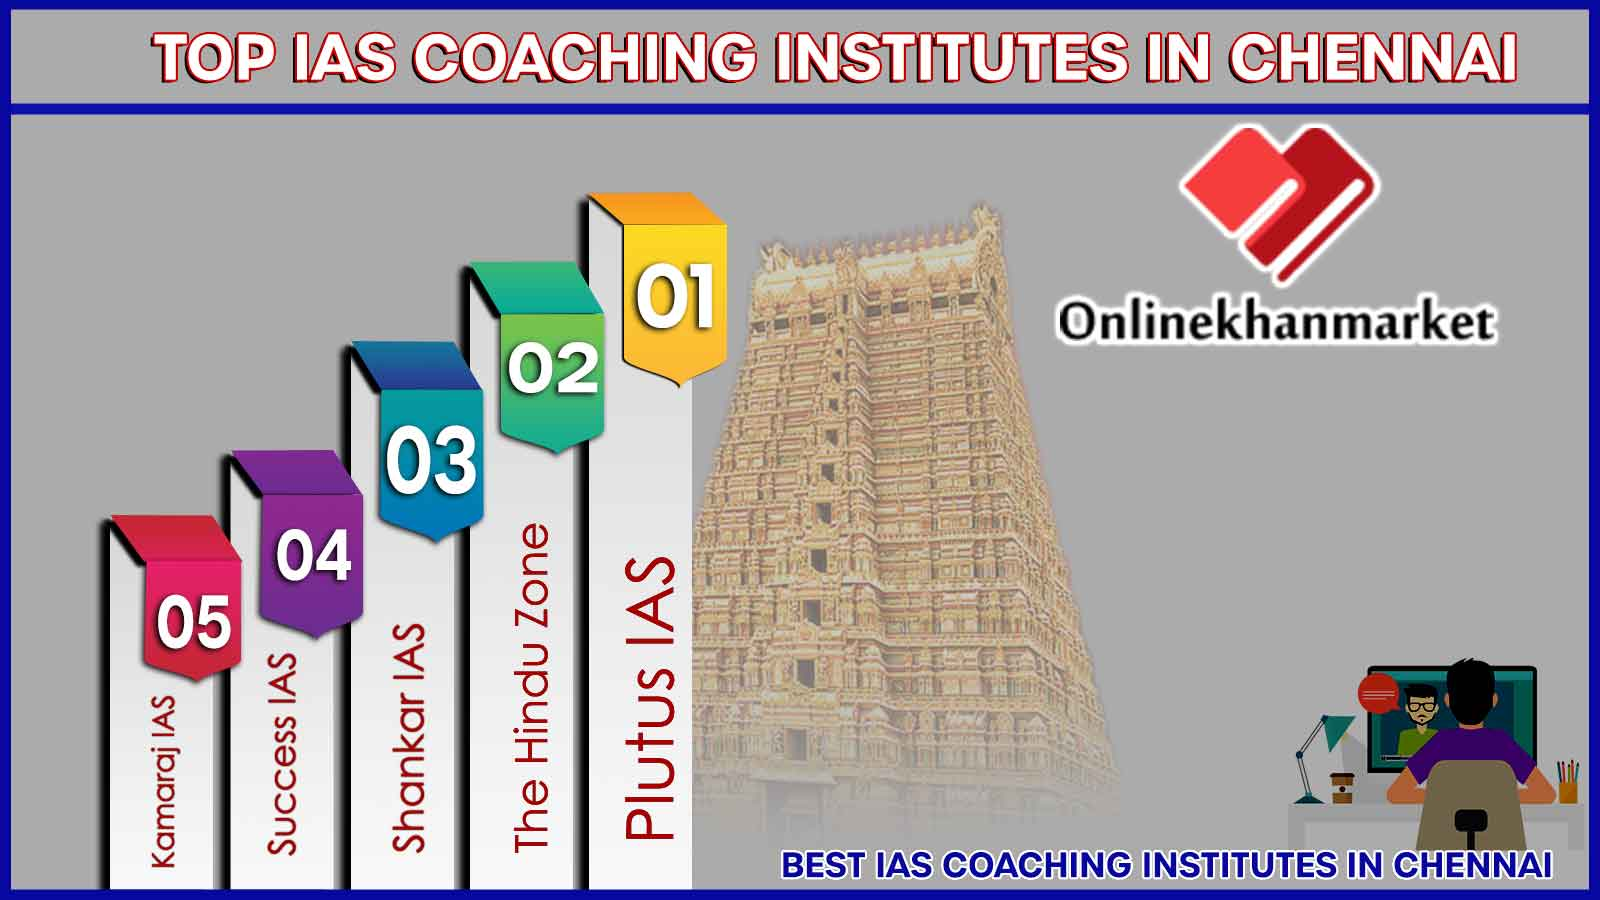 Top IAS Coaching Institutes in Chennai - with Contact Details